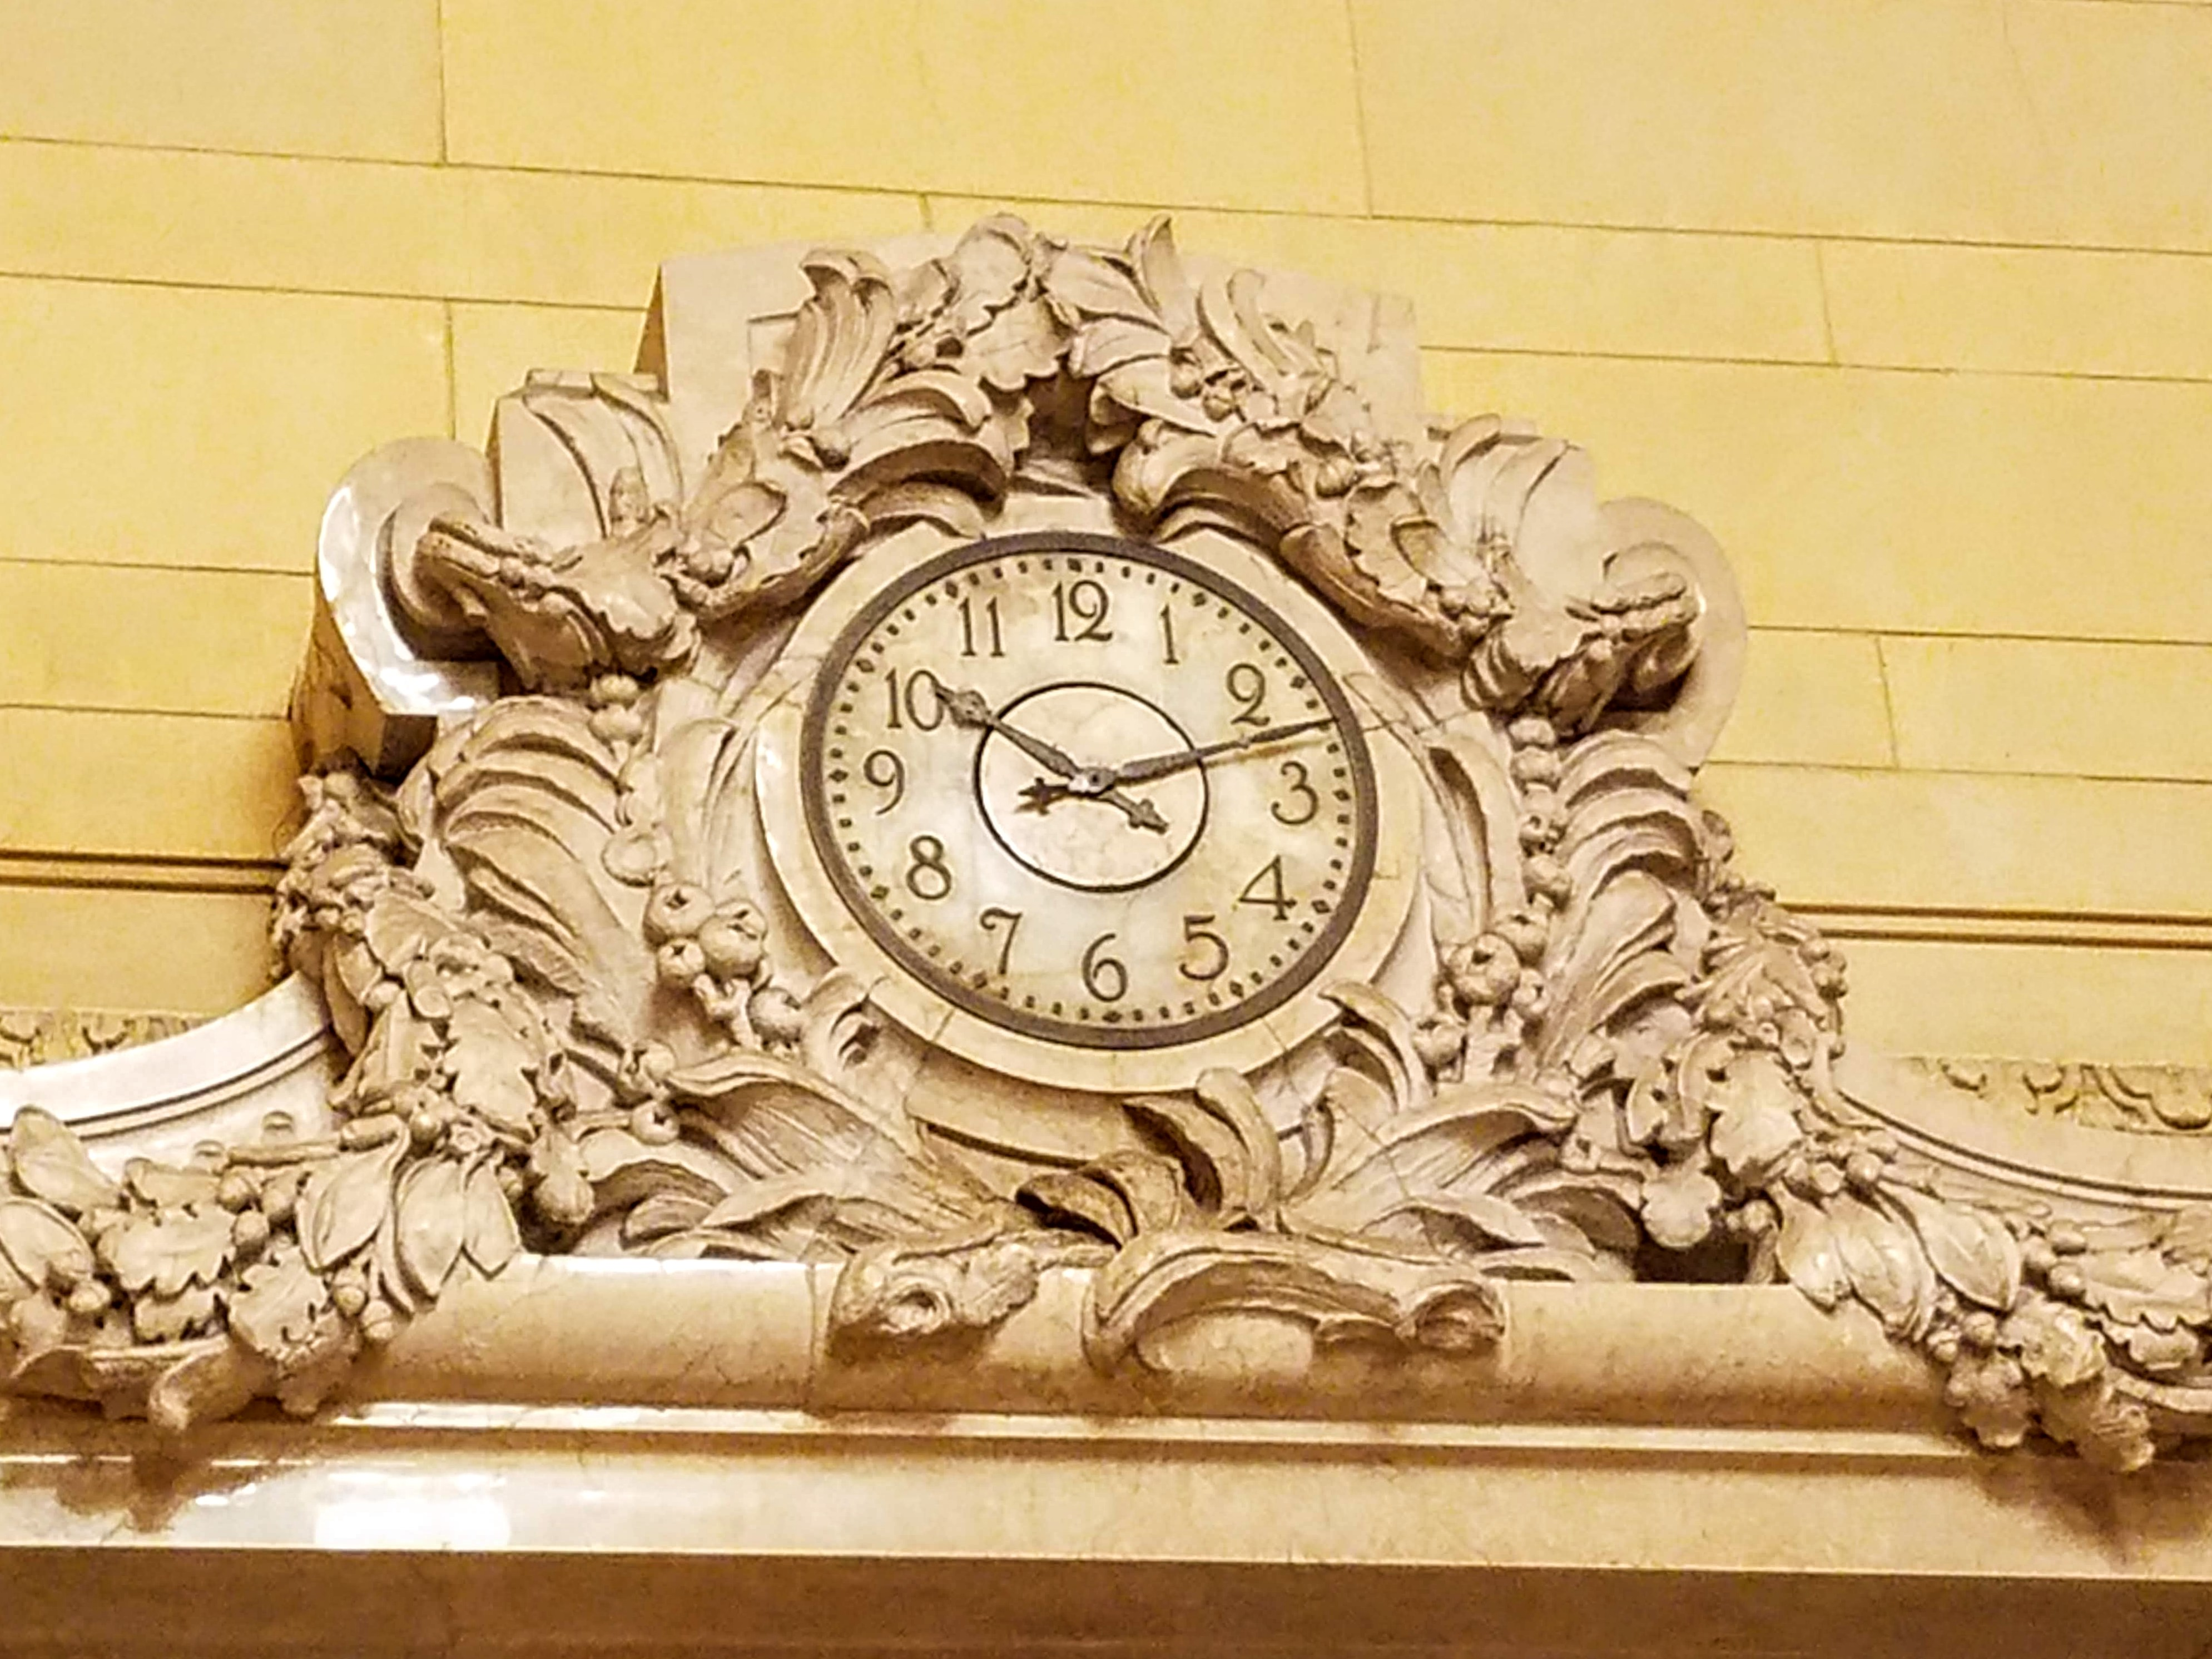 Photo Series 2: Grand Central in Detail